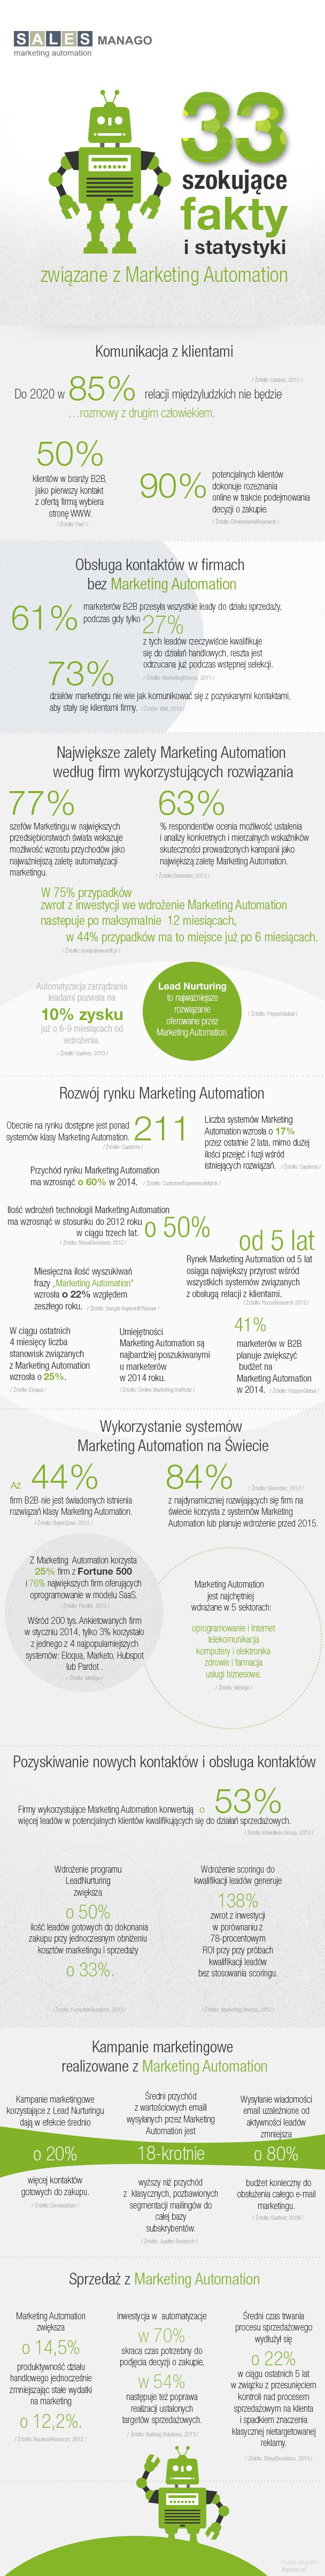 infographic - Marketing Automation / SALESmanago.com